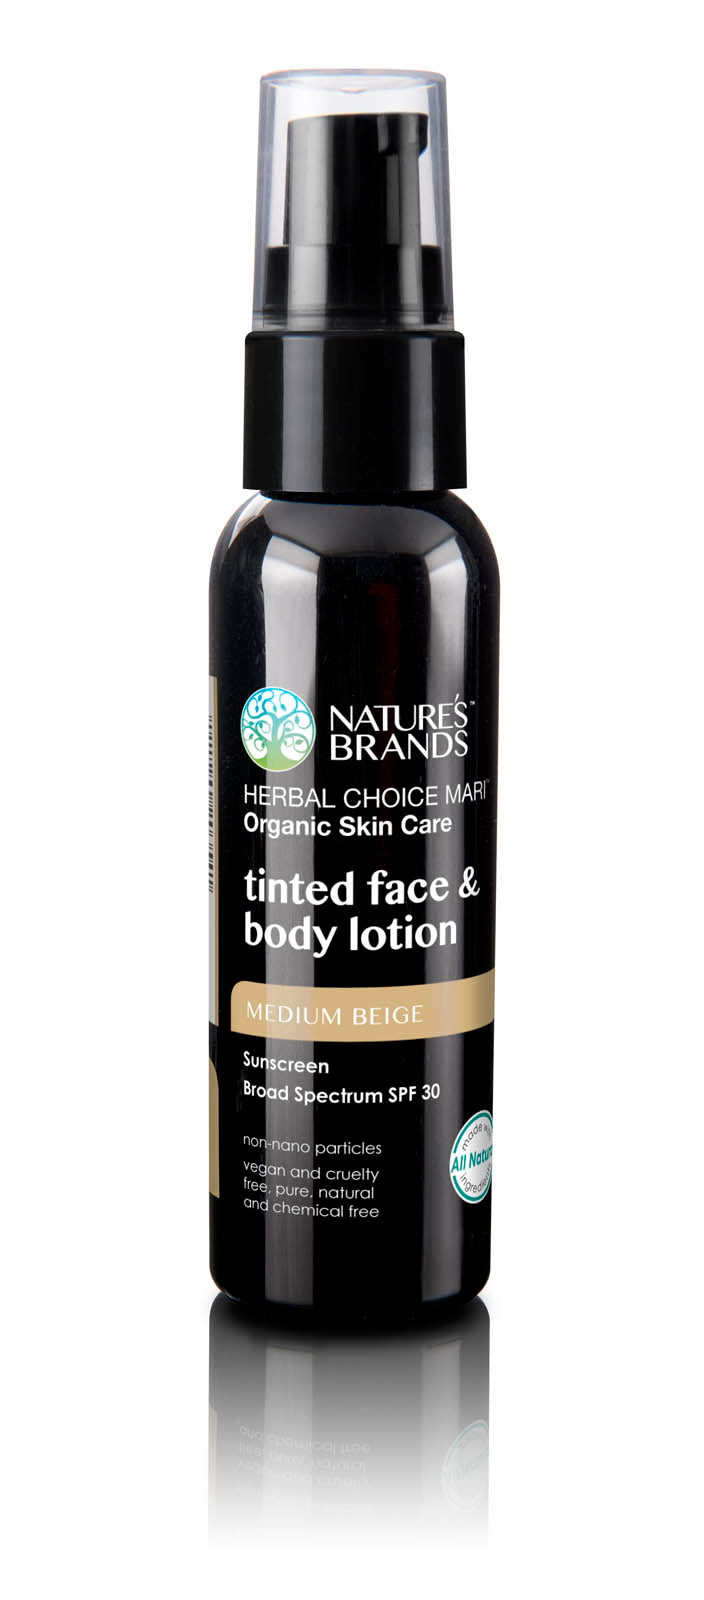 Herbal Choice Mari Natural SPF 30 Tinted Face And Body Lotion - Herbal Choice Mari Natural SPF 30 Tinted Face And Body Lotion - Herbal Choice Mari Natural SPF 30 Tinted Face And Body Lotion